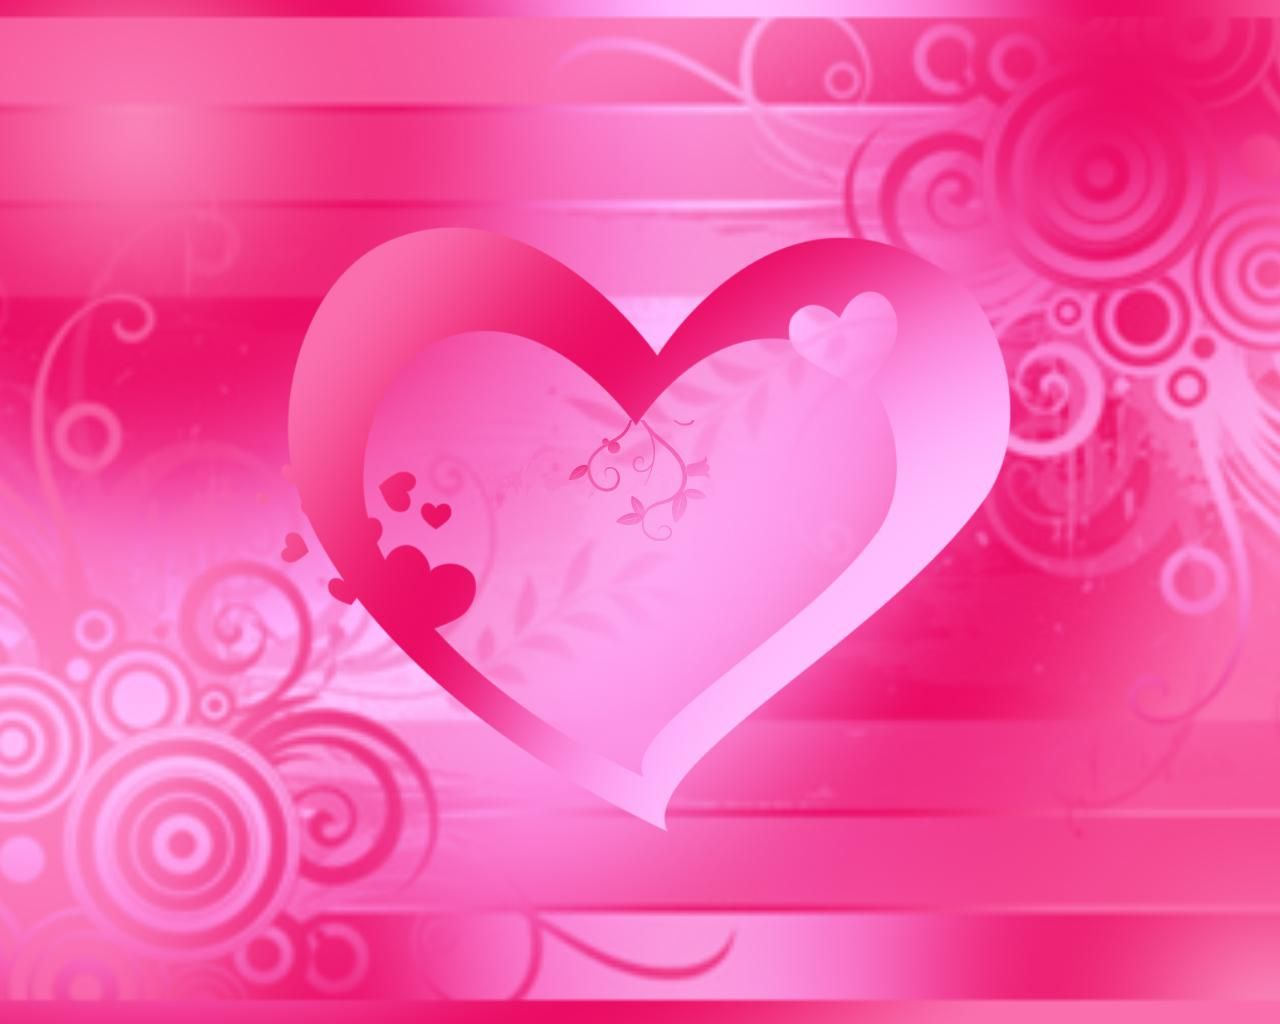 Pink love teddy bears google search colors hot pink magenta pink love teddy bears google search altavistaventures Image collections